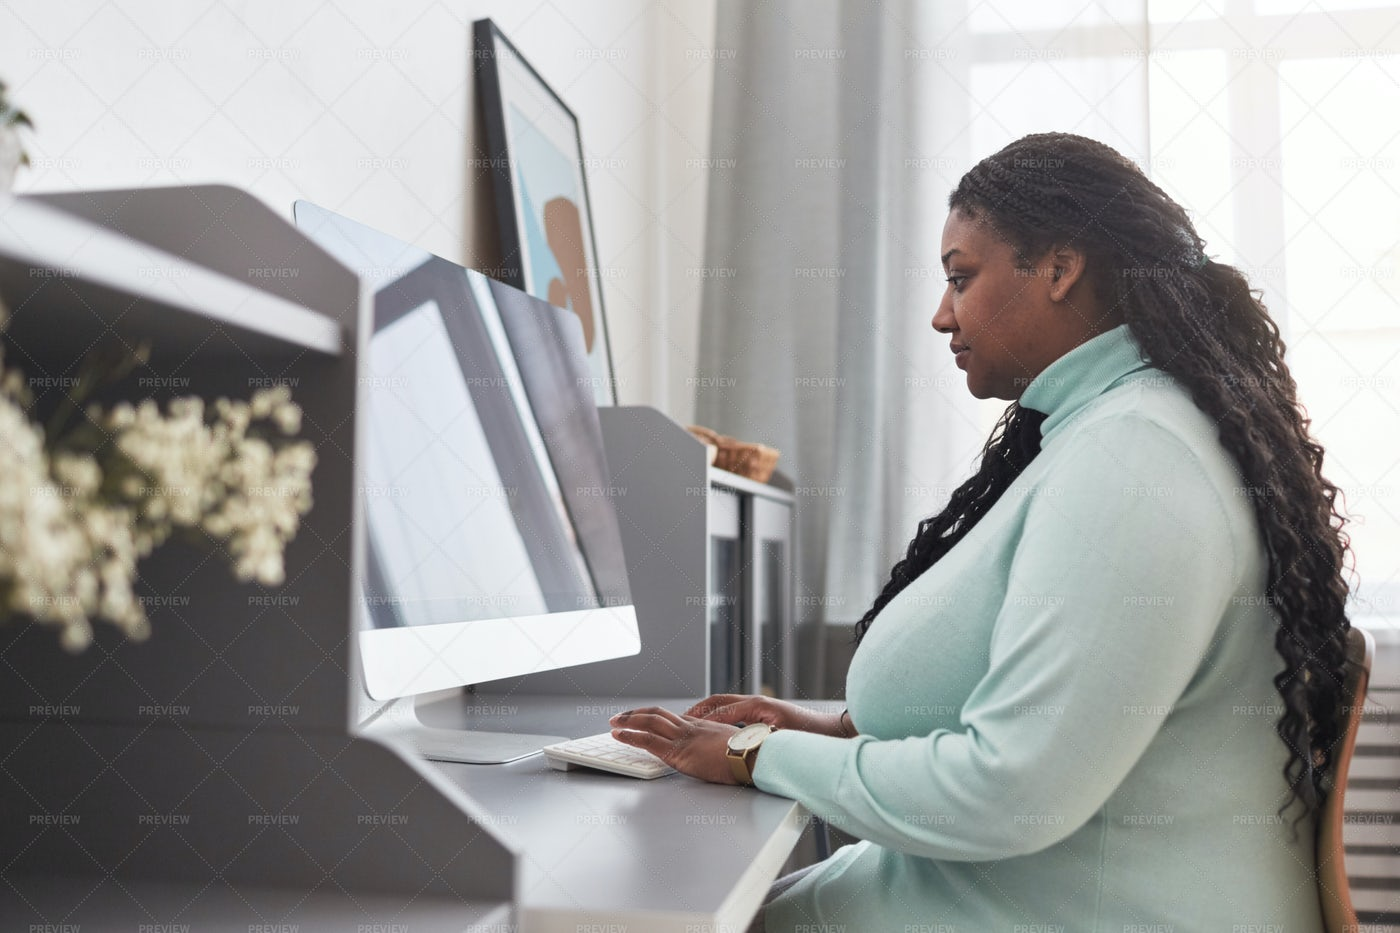 Remote Employee Working On PC: Stock Photos